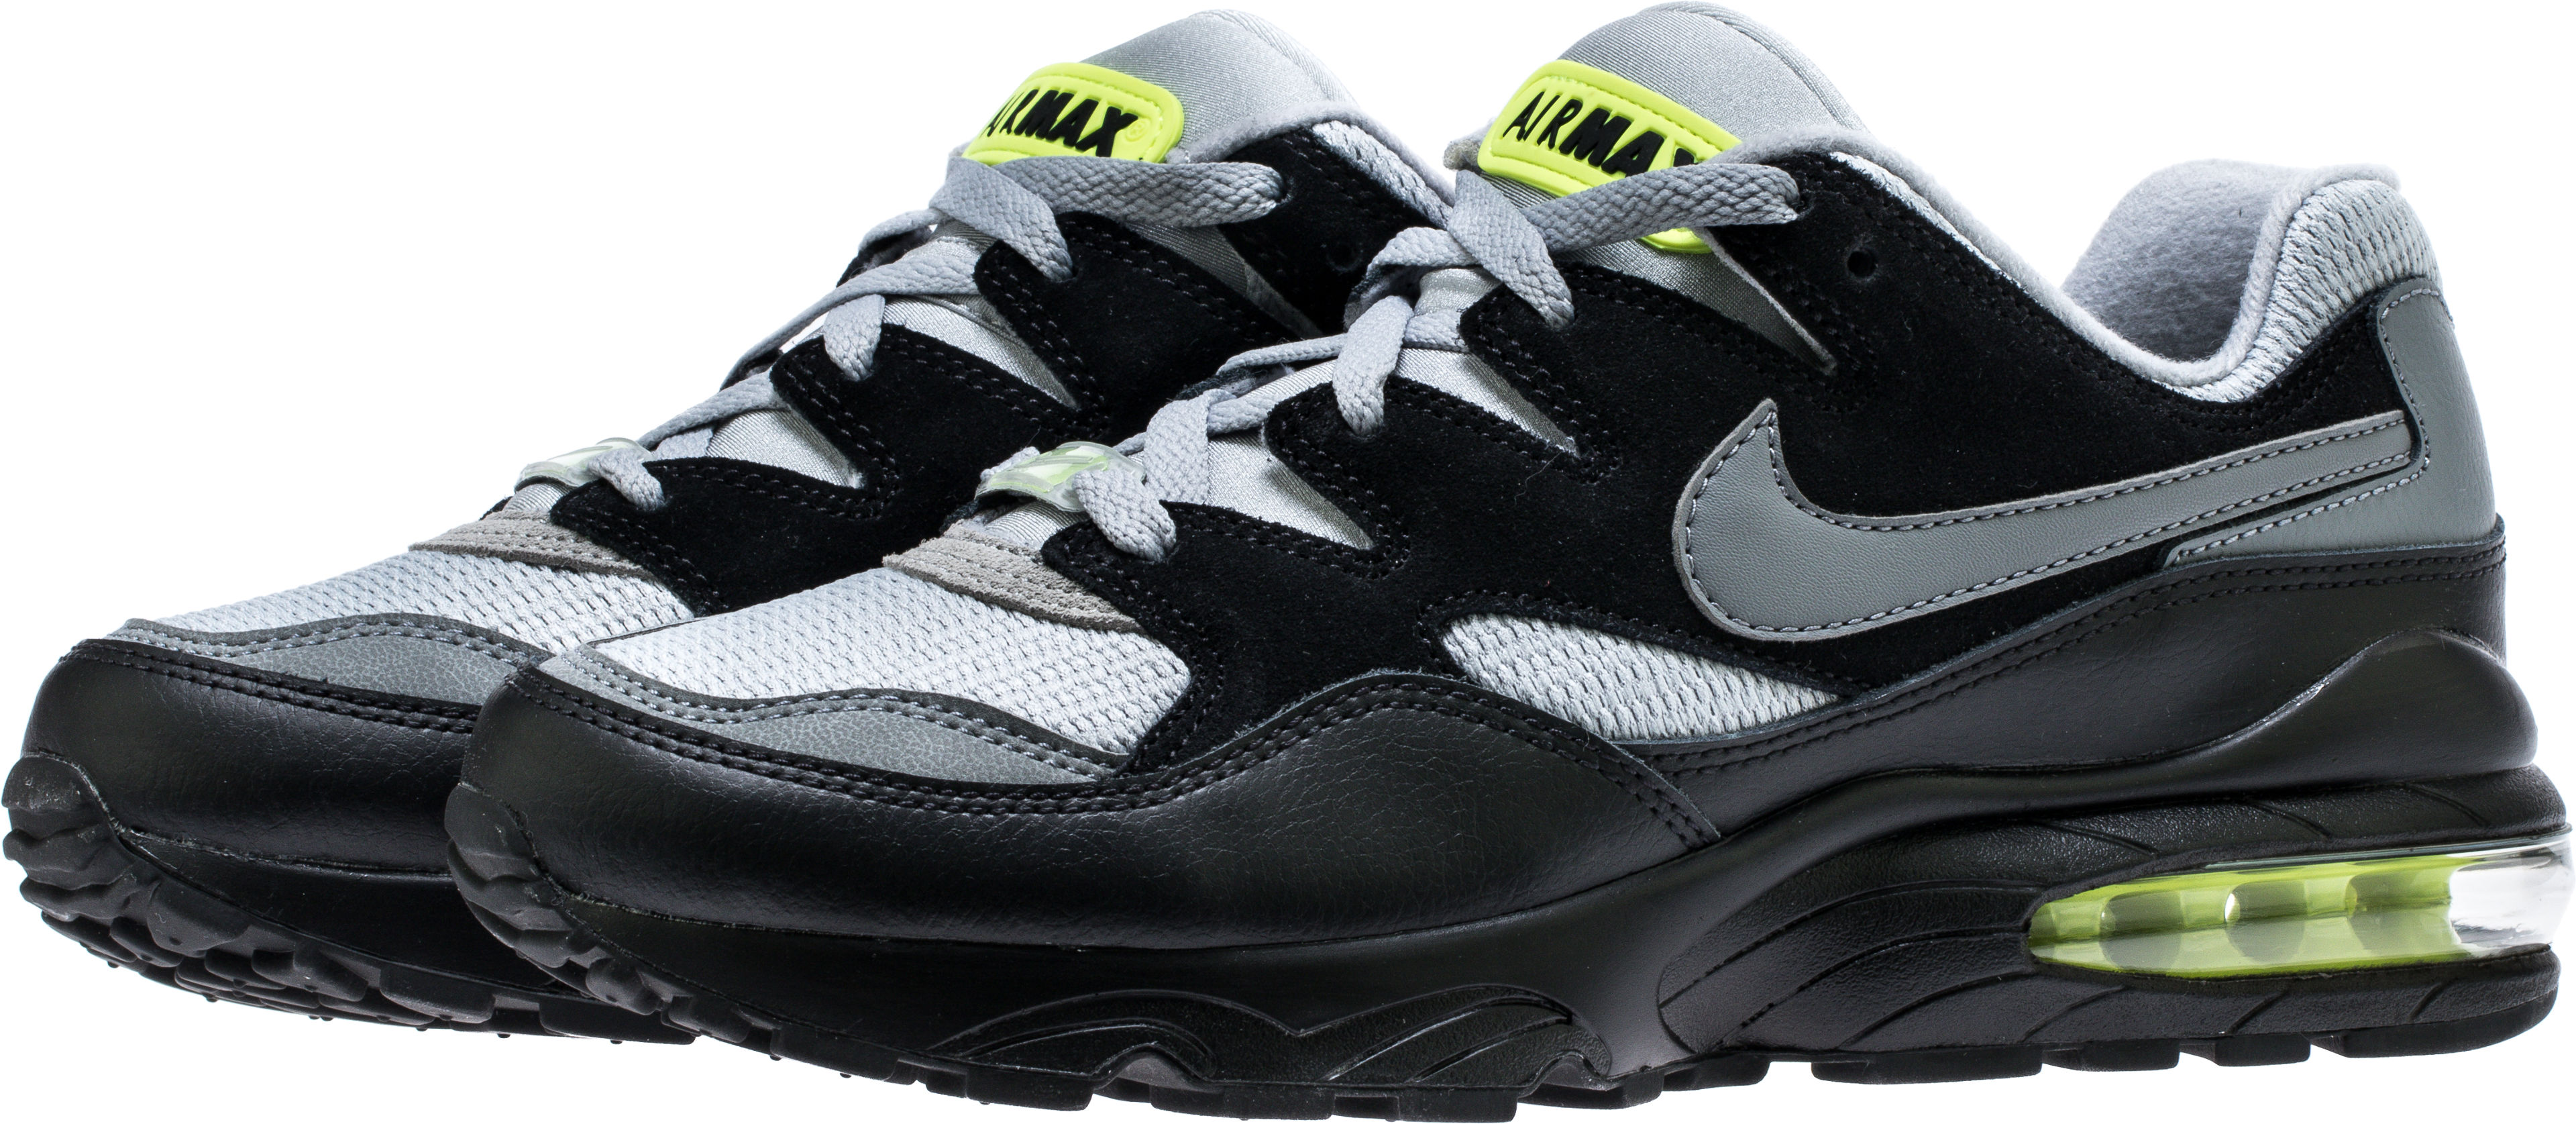 The Nike Air Max 94 Releases Silently